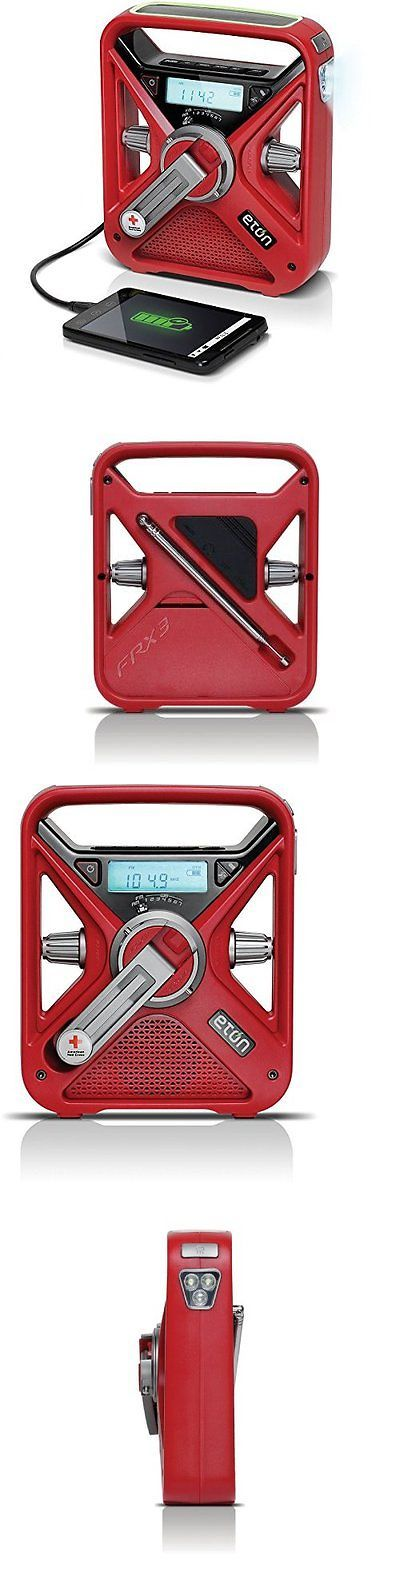 Portable AM FM Radios: American Red Cross Frx3 Hand Crank Noaa Am/Fm Weather Alert Radio With Charger BUY IT NOW ONLY: $64.21